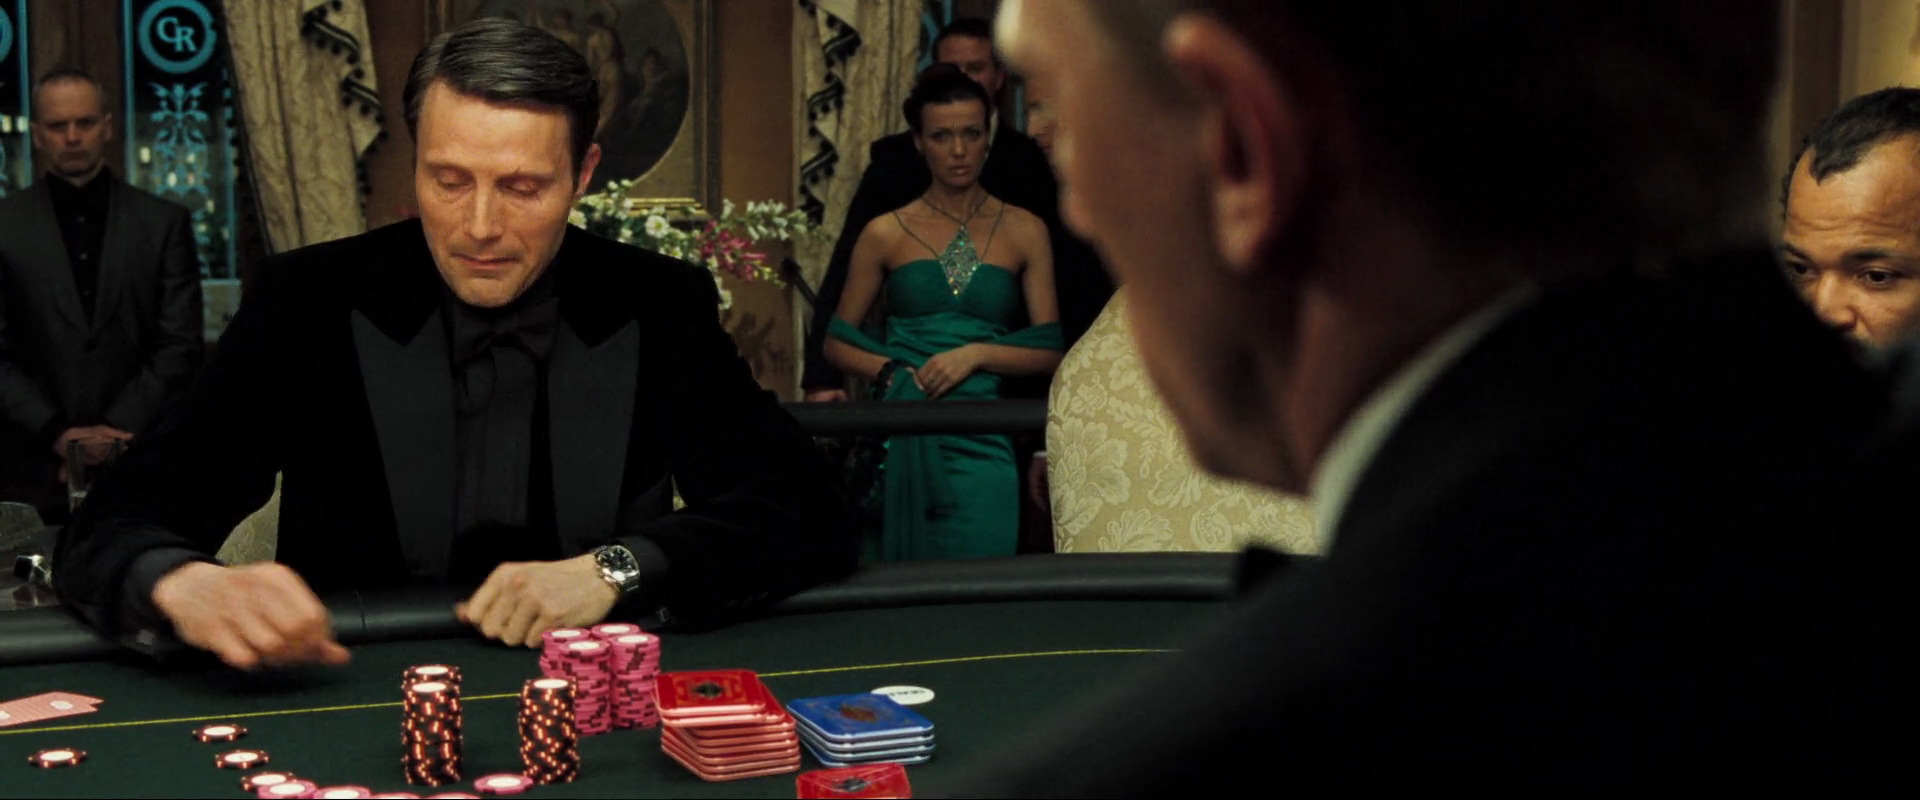 watch casino royale online free 2006